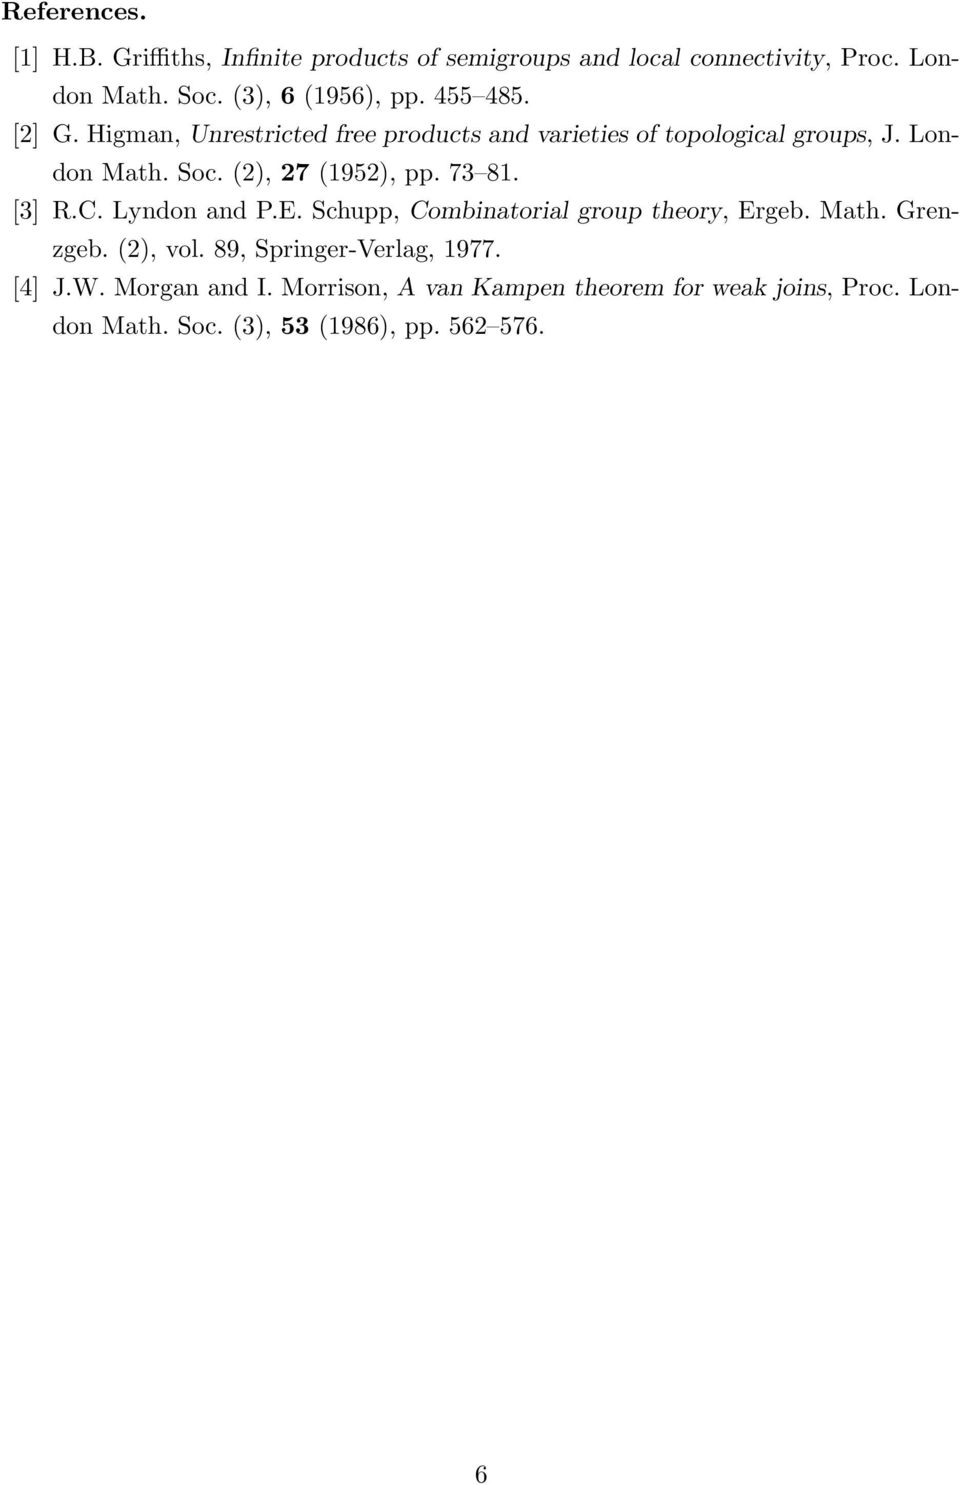 (2), 27 (1952), pp. 73 81. [3] R.C. Lyndon and P.E. Schupp, Combinatorial group theory, Ergeb. Math. Grenzgeb. (2), vol.